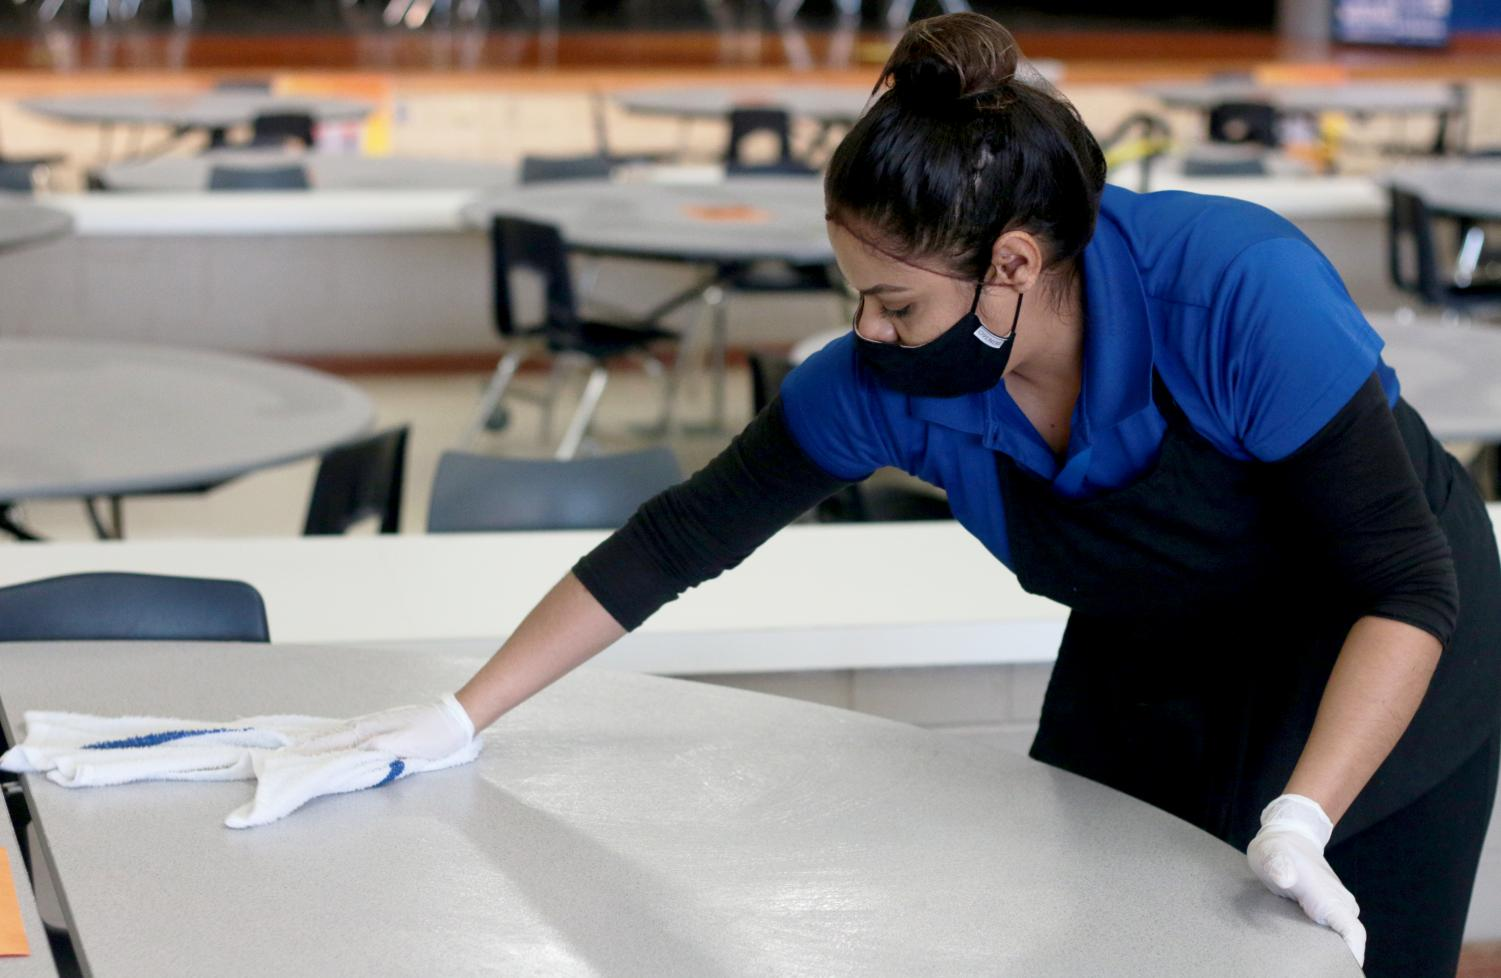 """Cafeteria worker Nayely González wipes down cafeteria tables between lunches. Cafeteria workers now conduct much more extensive cleanings, in response to COVID-19. """"I was really worried about lunch personally when I envisioned coming back to school,"""" counselor Dr. Justin Fields said. """"My initial thoughts have been good."""""""